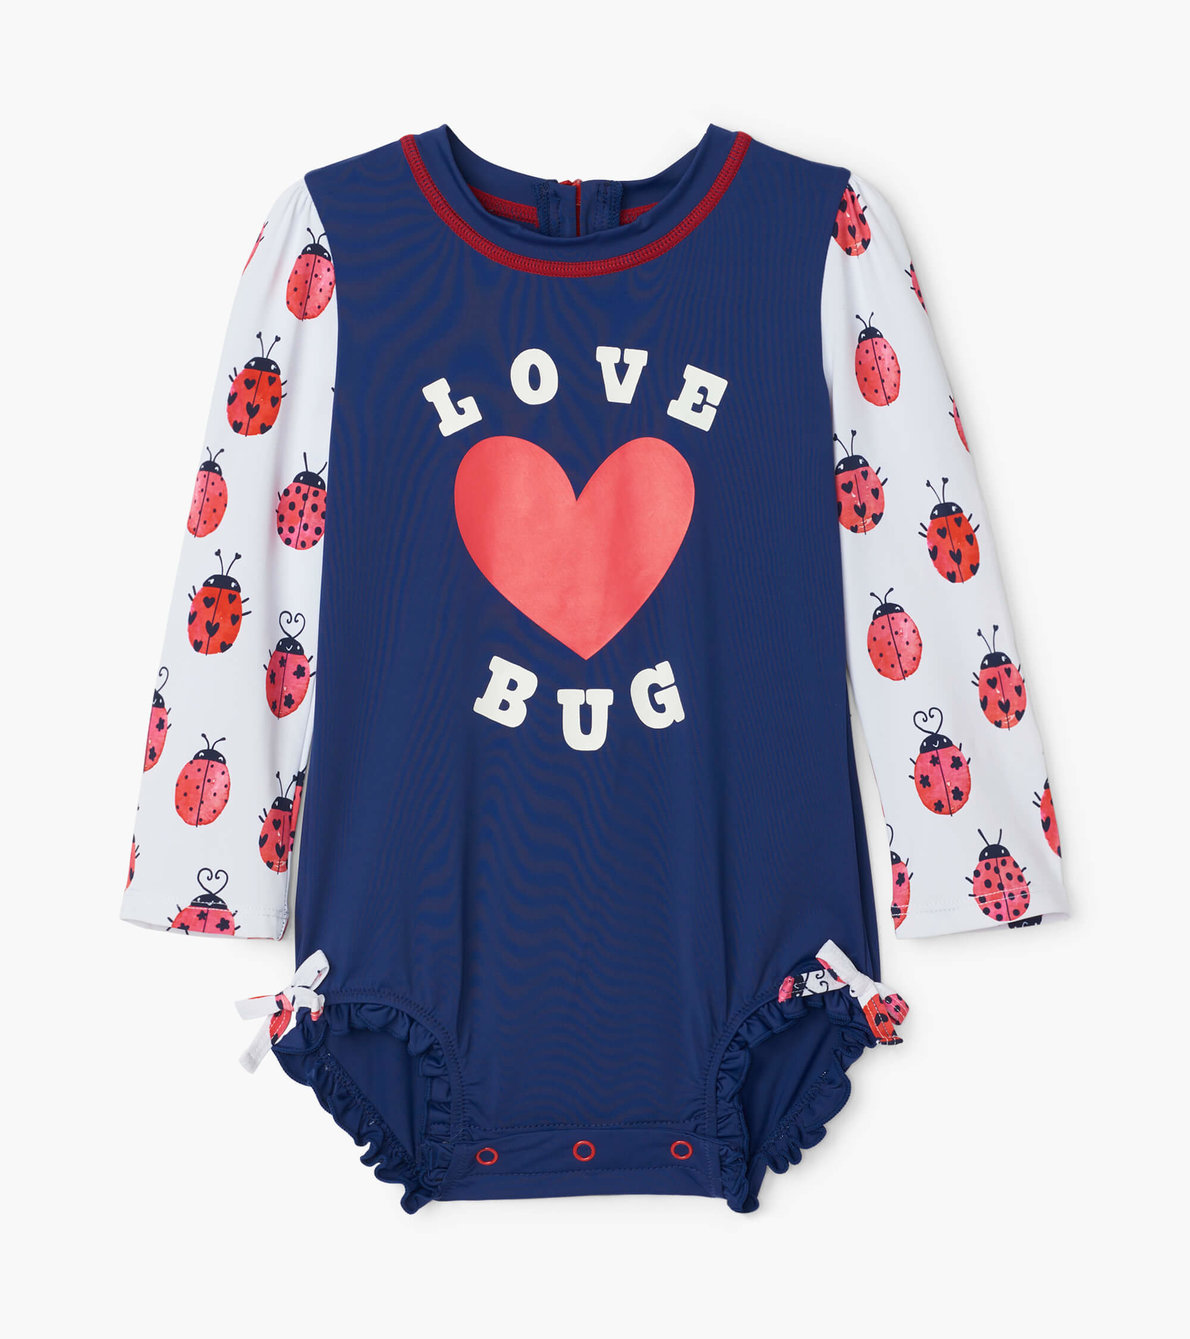 View larger image of Love Bugs Baby Rashguard Swimsuit